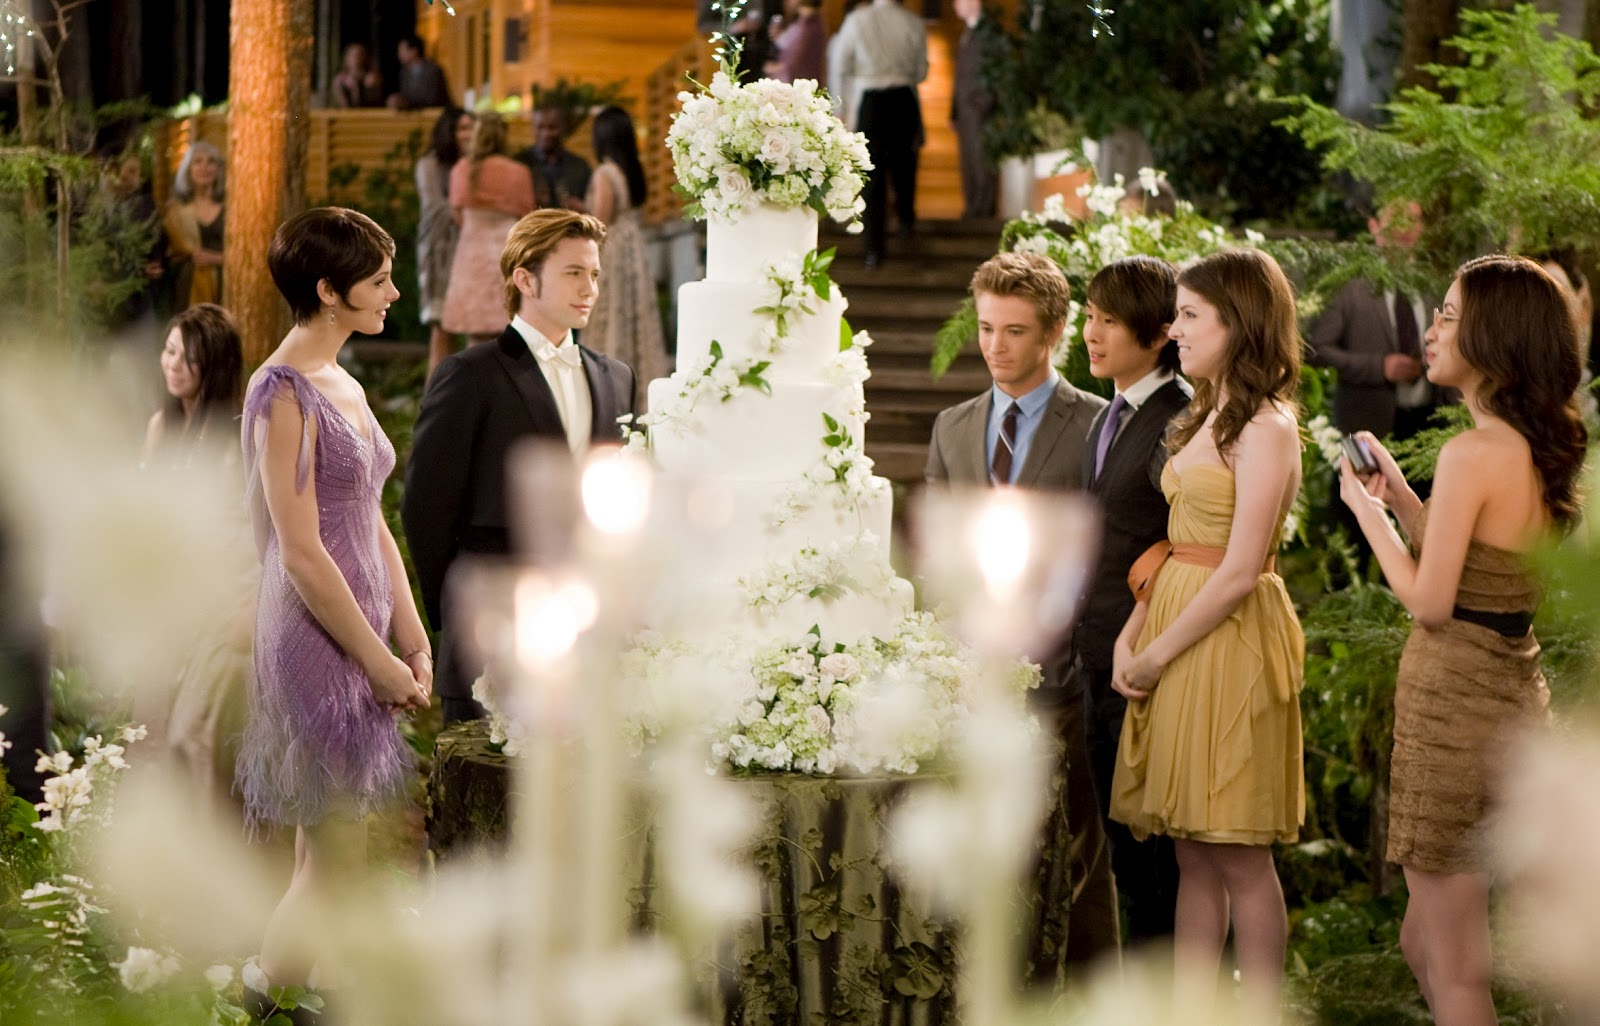 http://2.bp.blogspot.com/-hejzFjcTvvw/T7ZtKRWP9VI/AAAAAAAAA9E/caqYLaAmo-g/s1600/twilight-breaking-dawn-part-1-wedding-krsiten-stewart-and-robert-pattinson-3.jpg